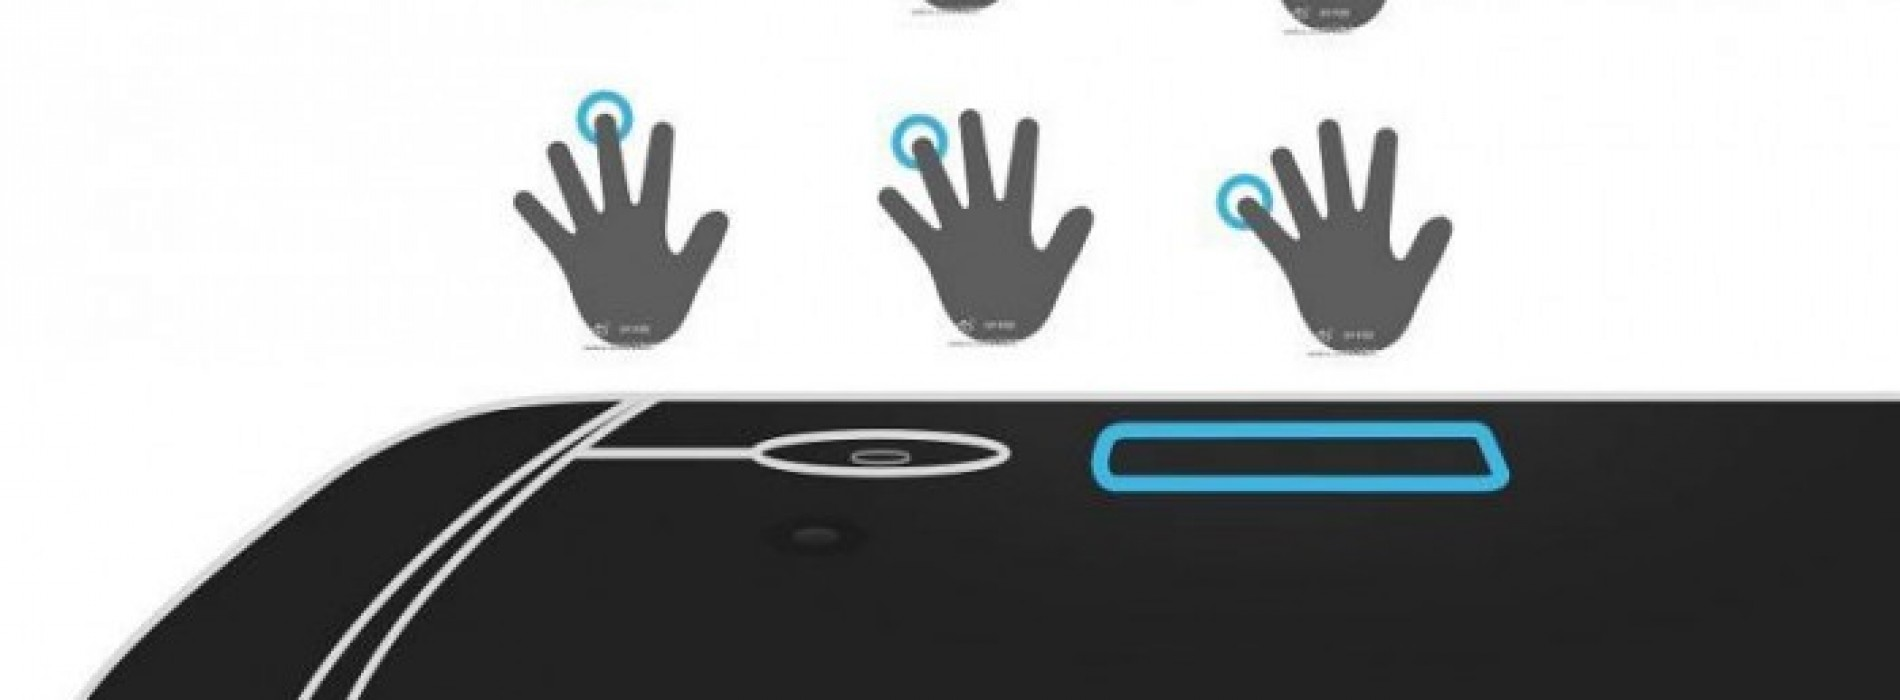 HTC One Max fingerprint sensor is not just for security?